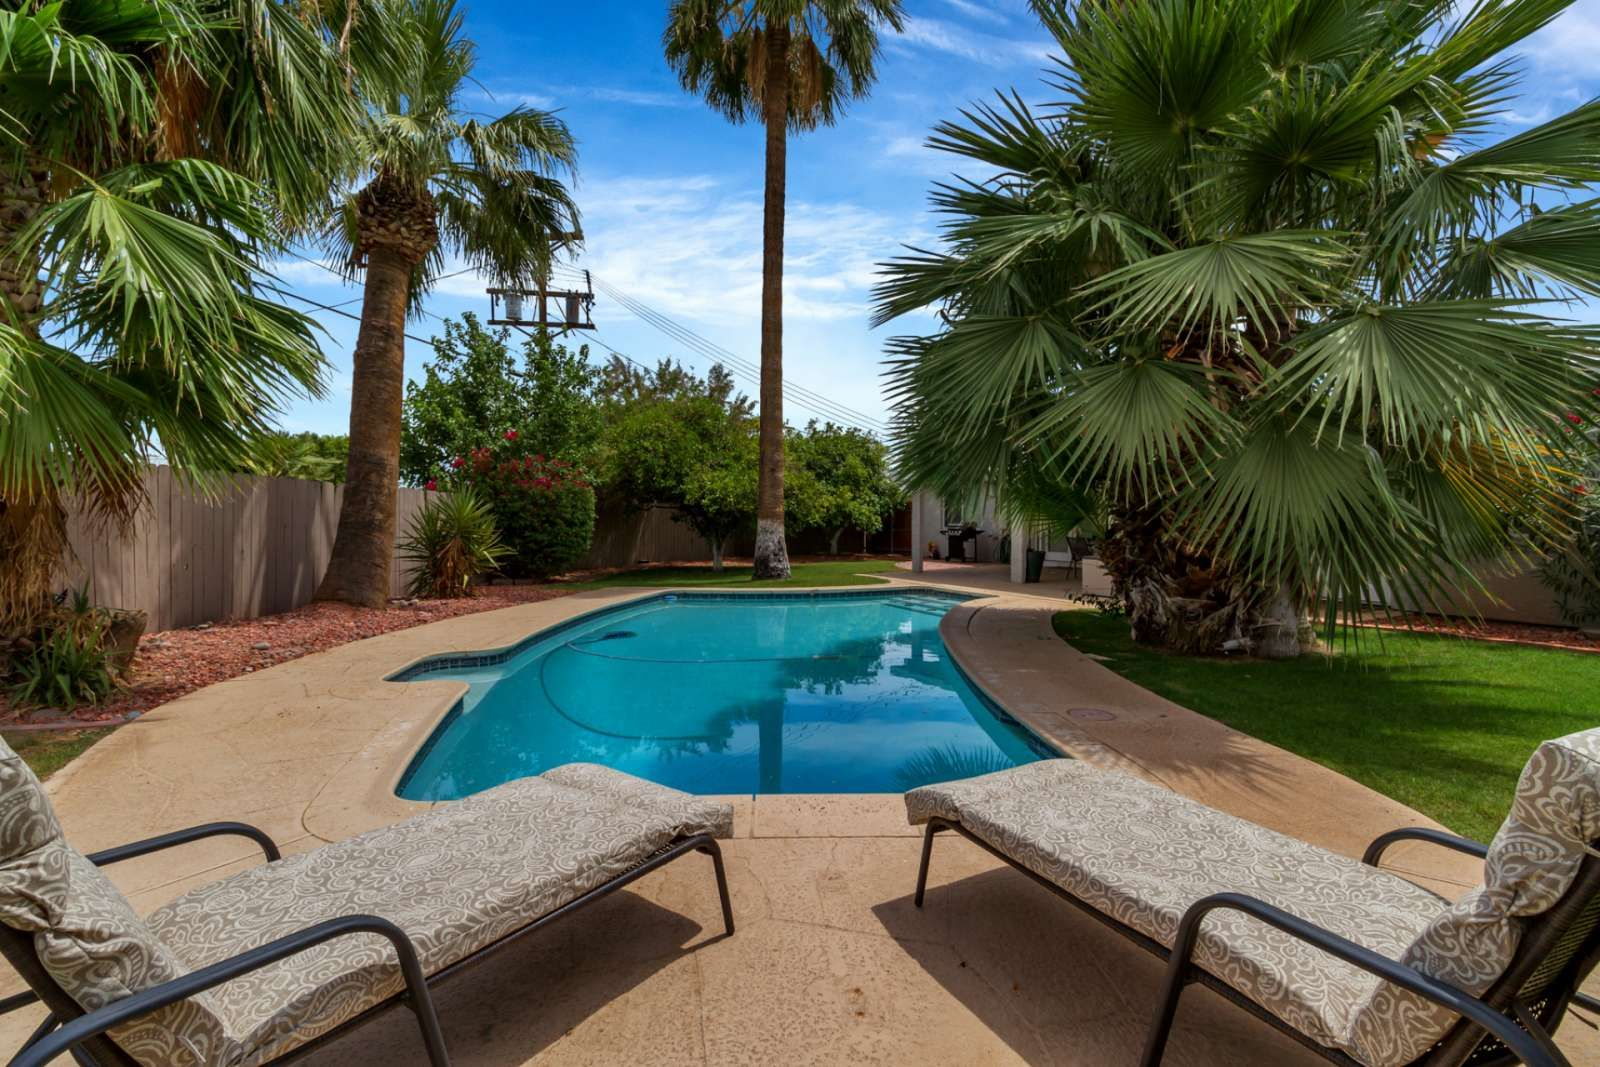 Scottsdale Vacation Rental Minutes To Old Town Scottsdale Golf Giants Stadium Private Pool Perfe Florida Beach House Old Town Scottsdale Vacation Rental